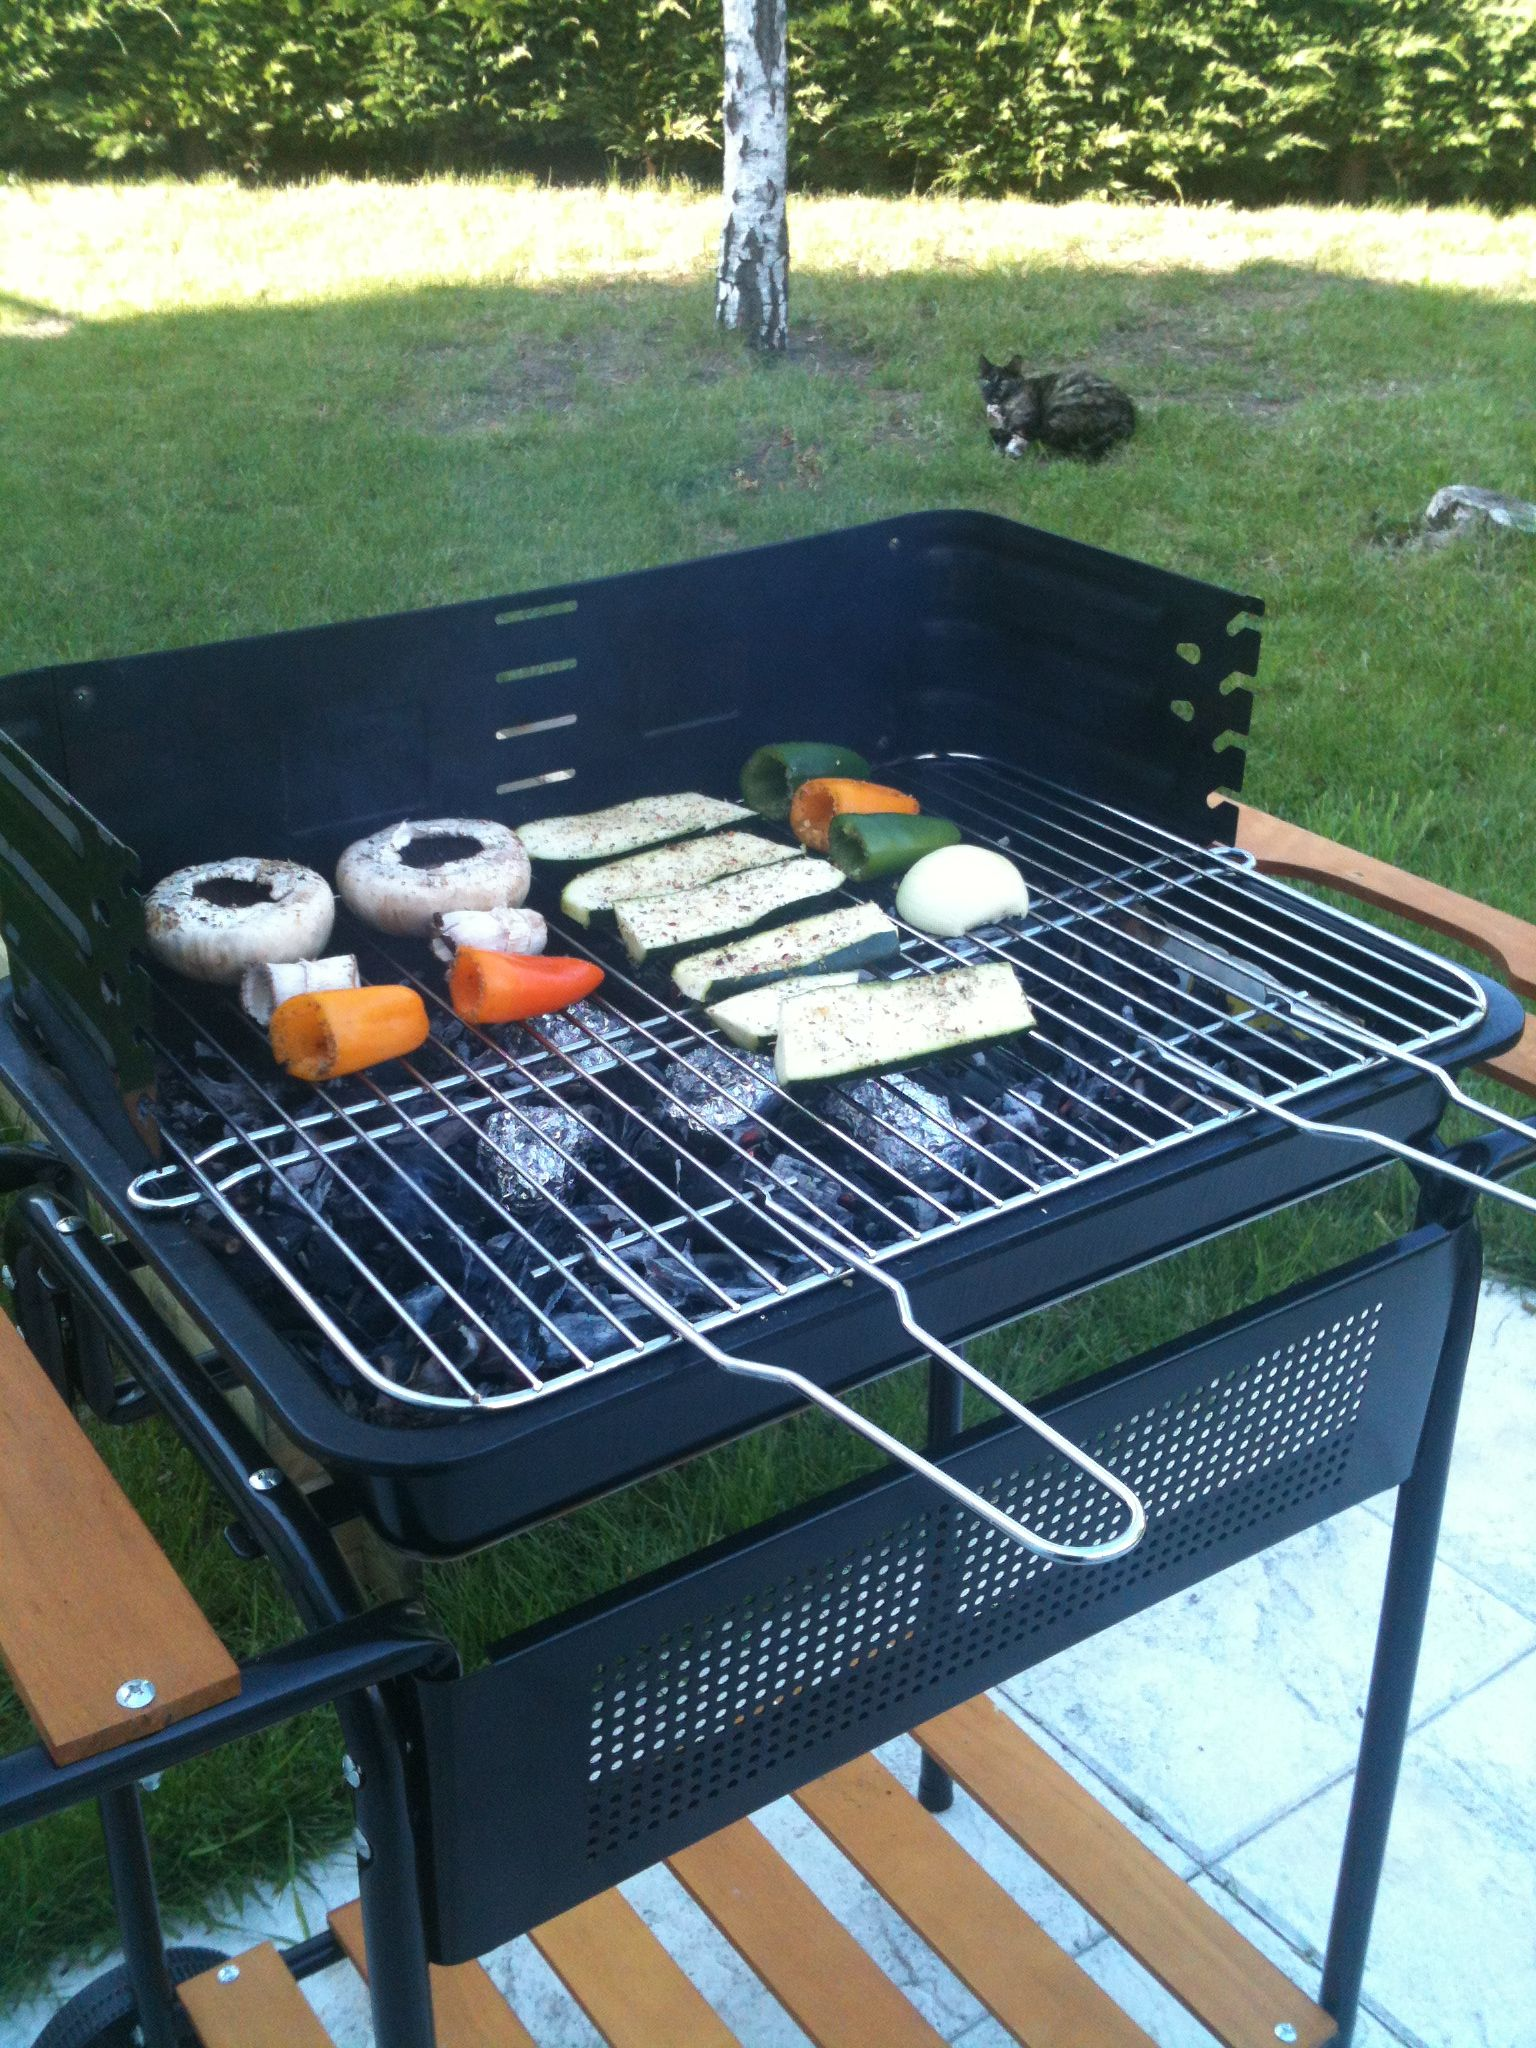 Vegetables barbecue